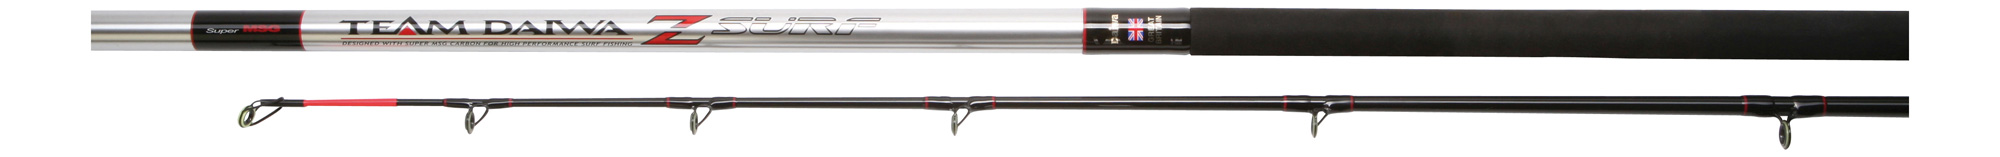 EX DISPLAY TEAM DAIWA Z 13'6 2PC 4-8OZ MATCH BEACH ROD TDZS136M RRP £399 Enlarged Preview